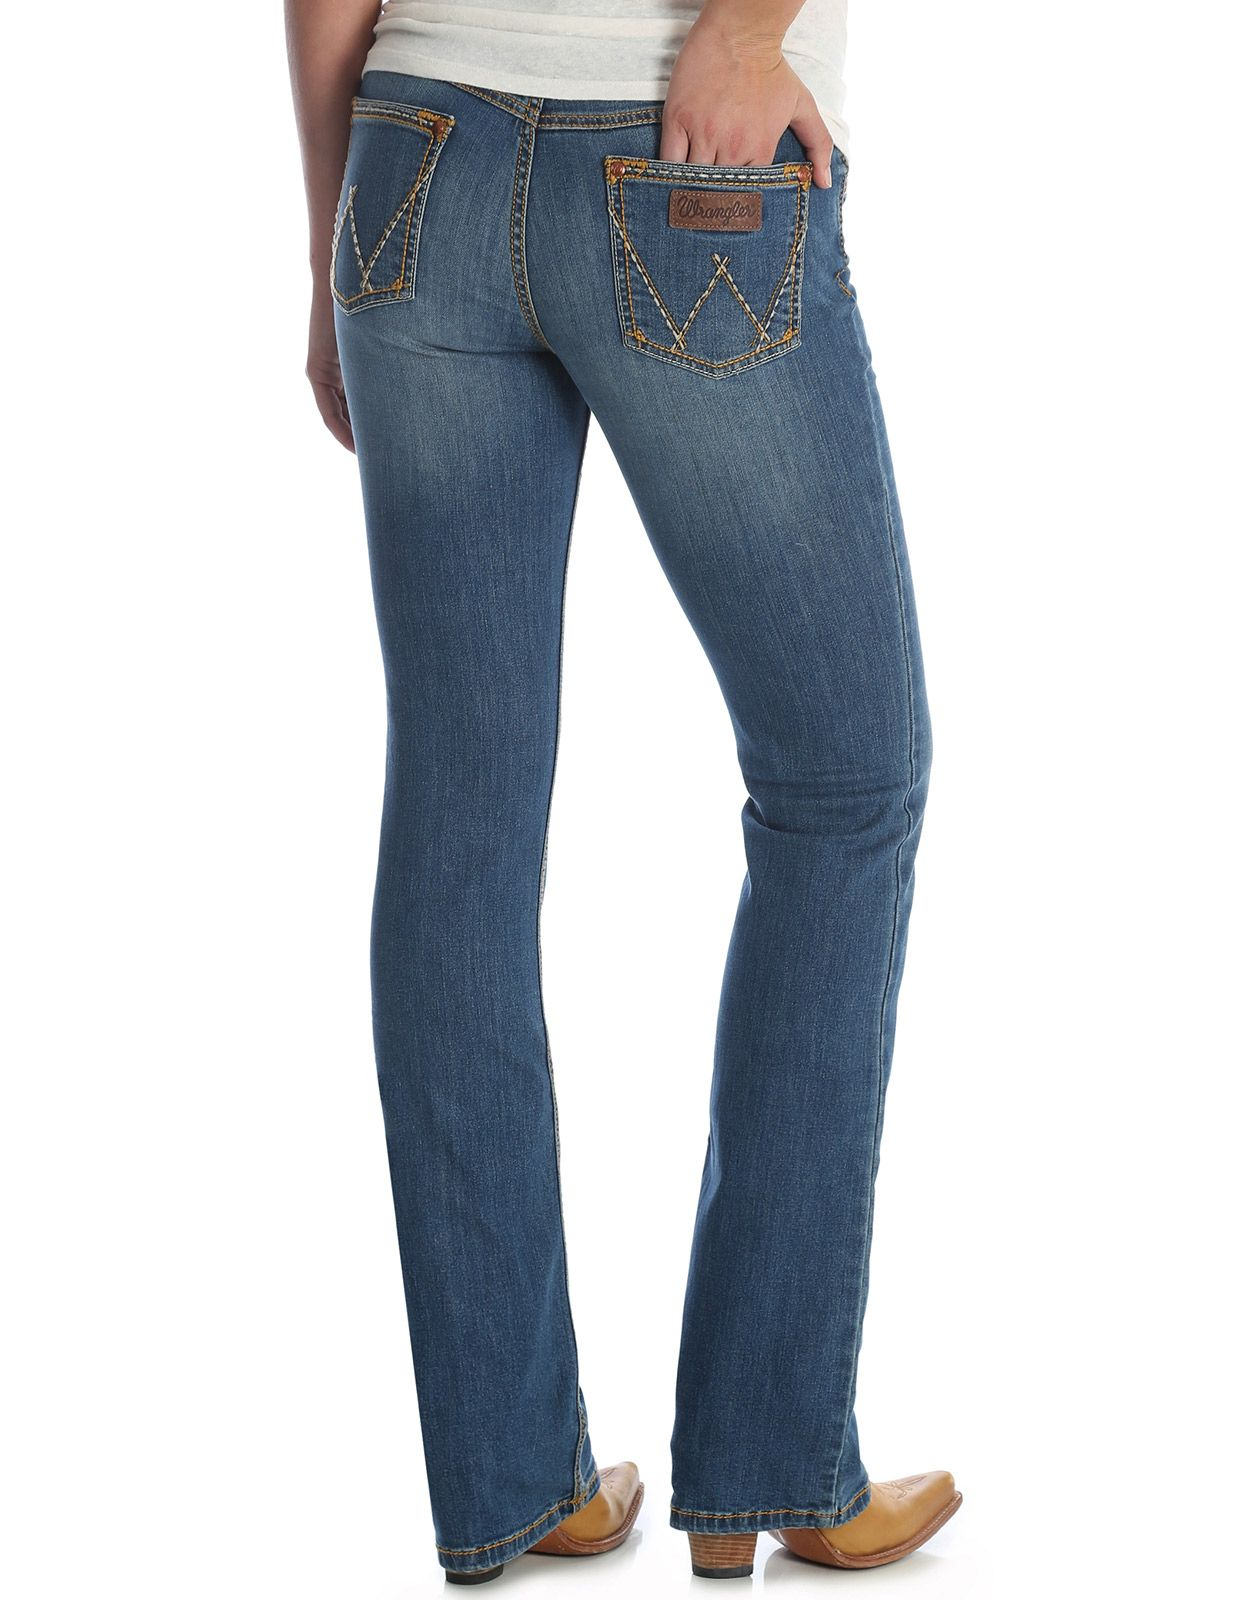 Wrangler Women's Retro Mae Stretch Mid Rise Slim Fit Boot Cut Jean - KM Wash